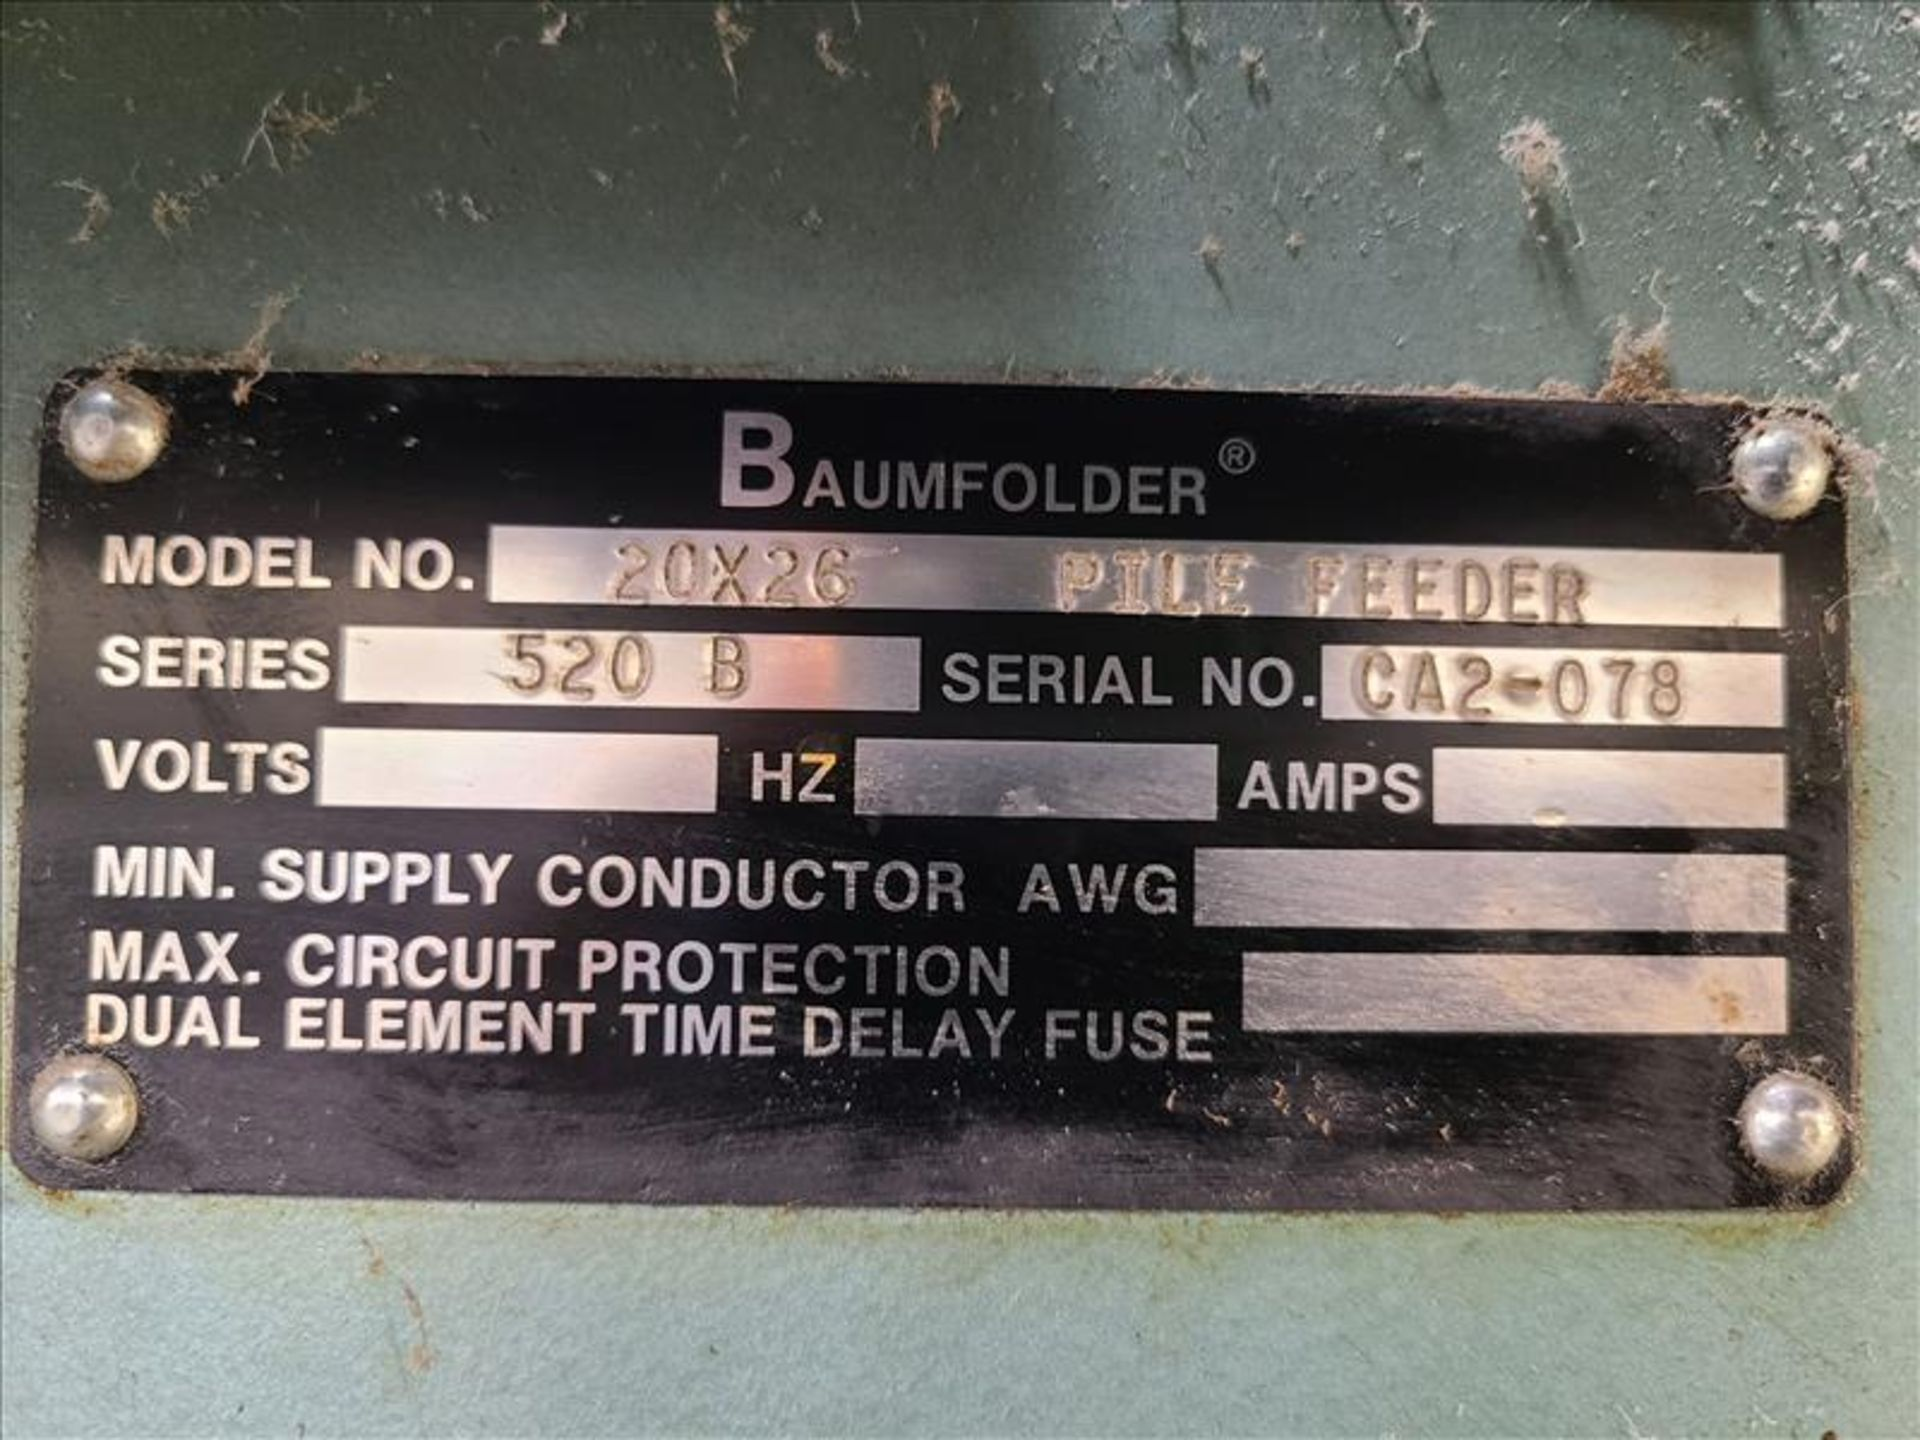 Baumfolder Pile Feeder, series 520 B, model 48994-001, S/N. CA2-078 208-230V, 3 Phase, 14 amps c/w - Image 5 of 6